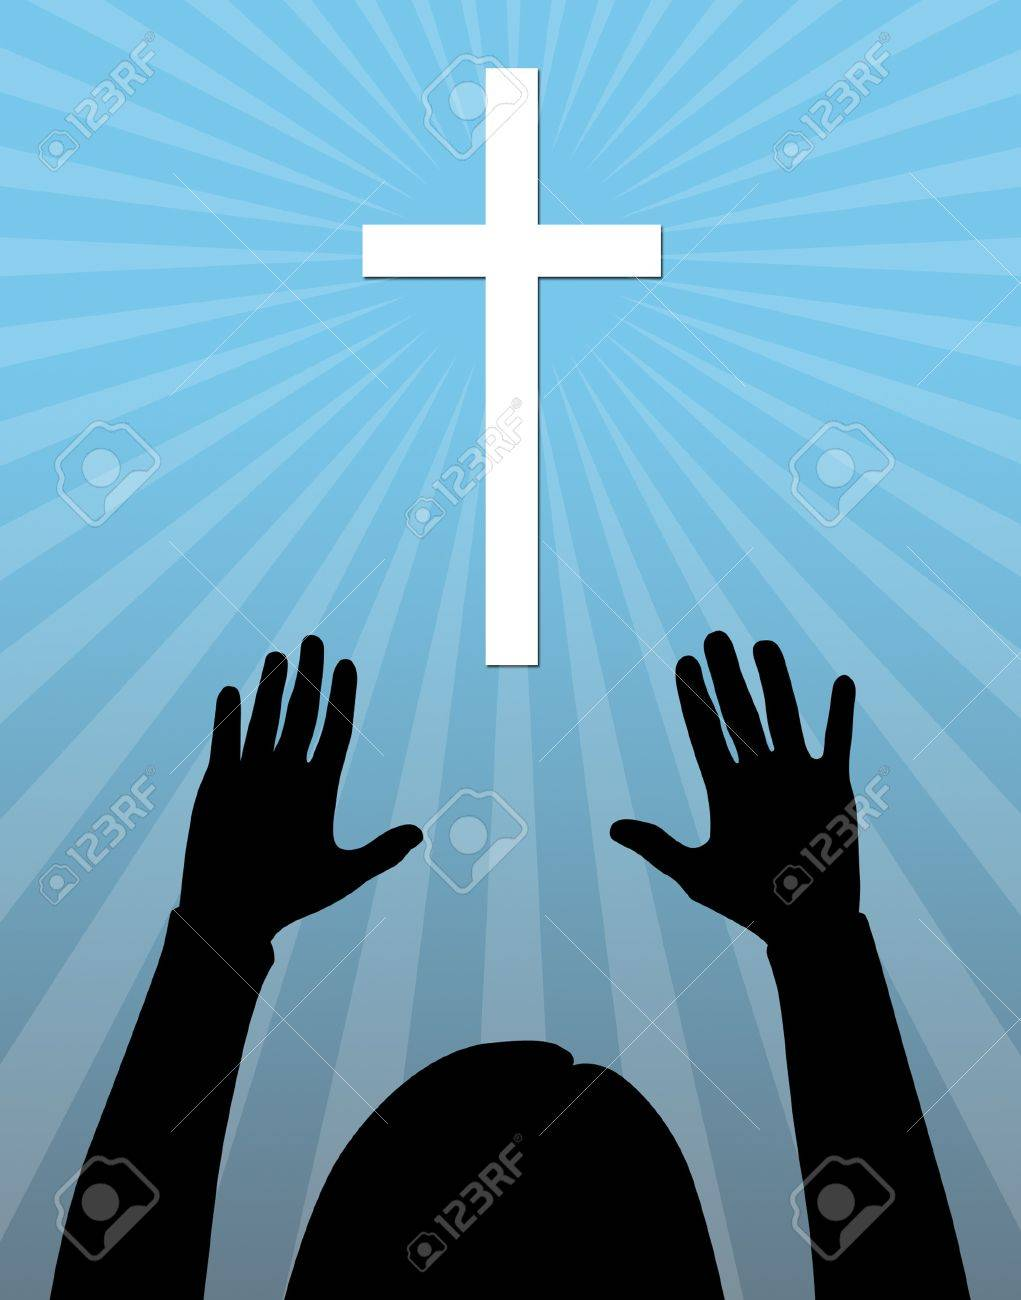 Silhouette of a Christian woman worshiping. Stock Photo - 8694091